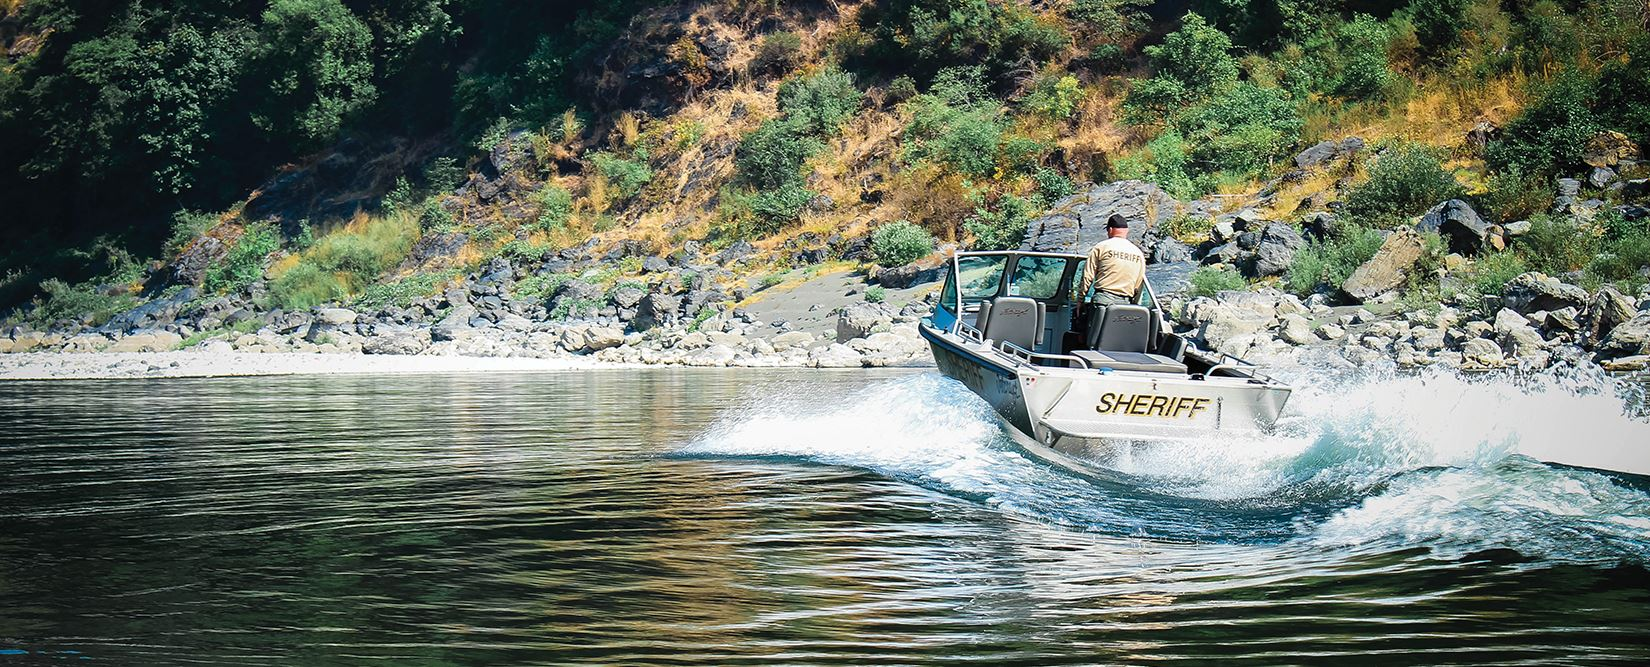 The Sheriff's Jet boat navigates a river